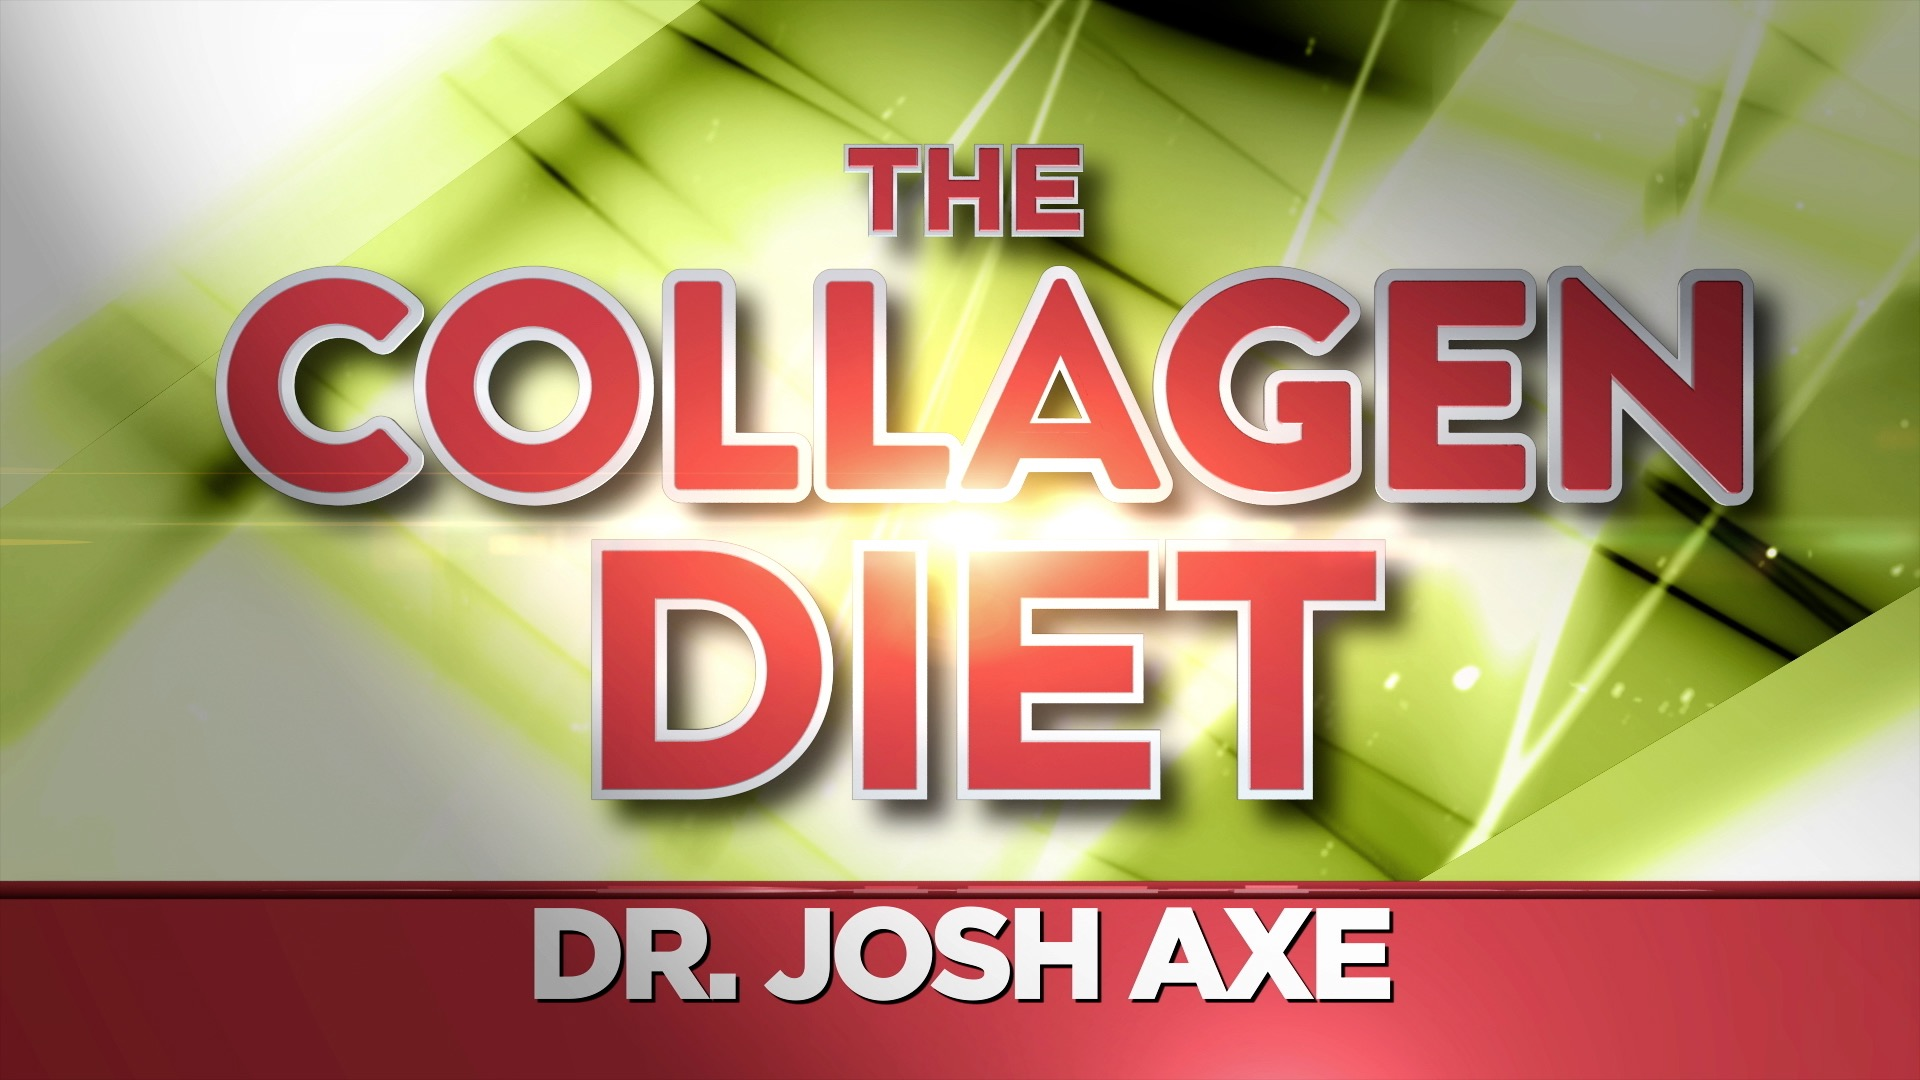 Collagen Diet with Dr. Josh Axe, The